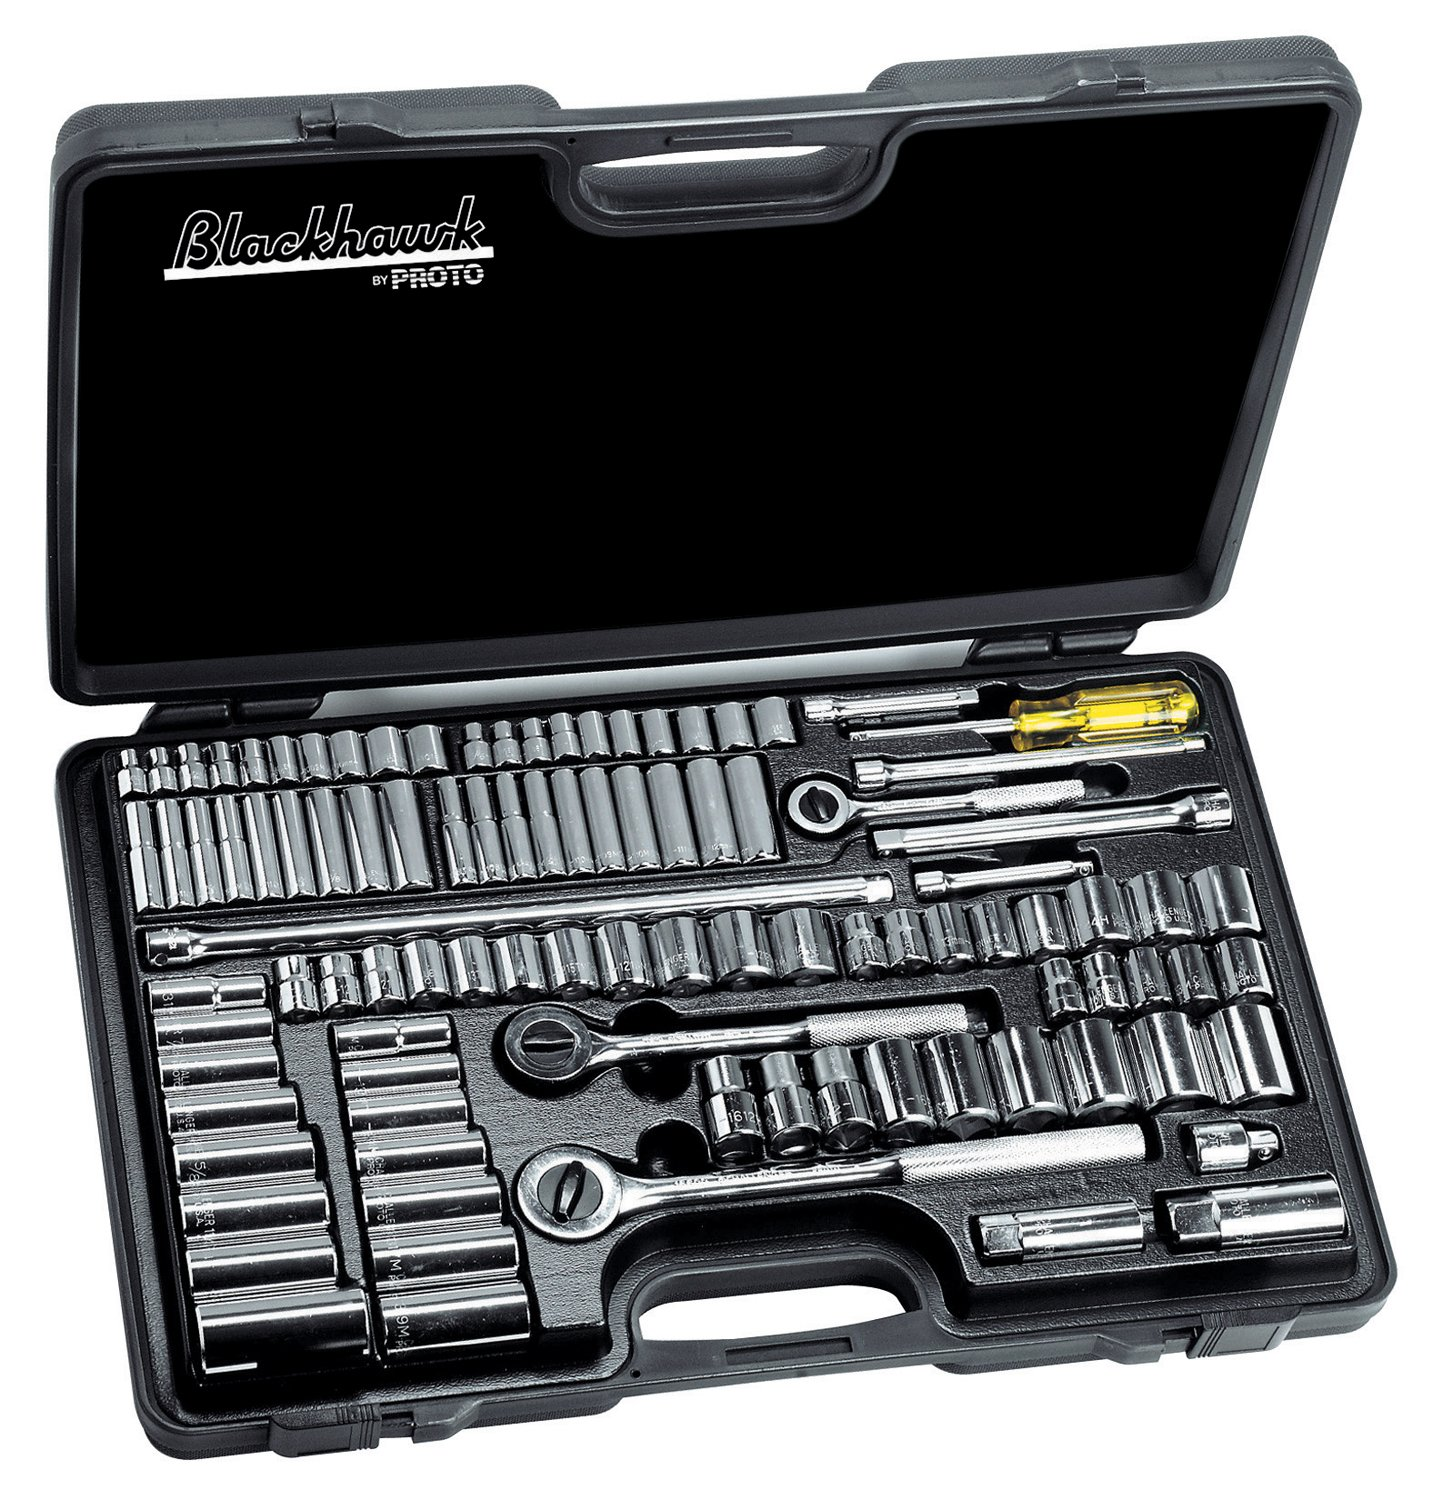 Blackhawk 578-9796 9796 Standard and Metric Socket Sets, 1/4', 3/8', 1/2', 6 Point/12 Point, 99 Piece 1/4 3/8 1/2 Stanley Products